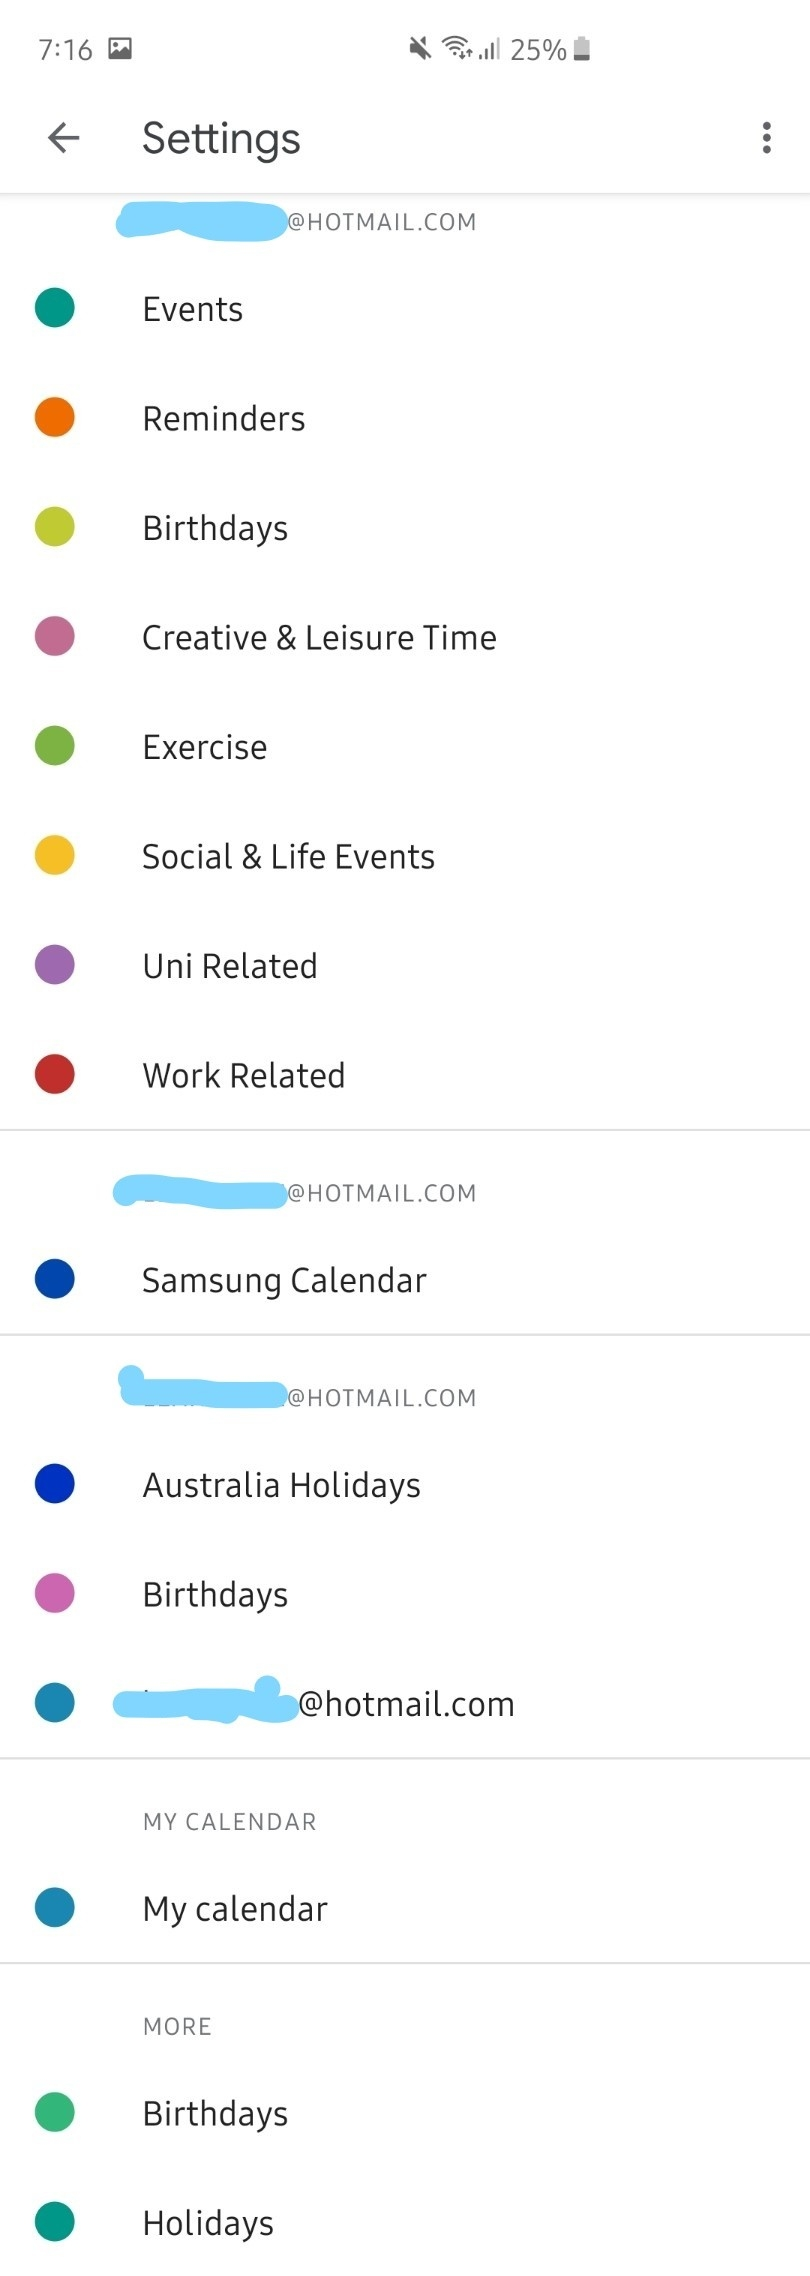 Can't Delete/edit Certain Duplicate Calendars And Names Don-Holidays Listed Twice In Google Calender